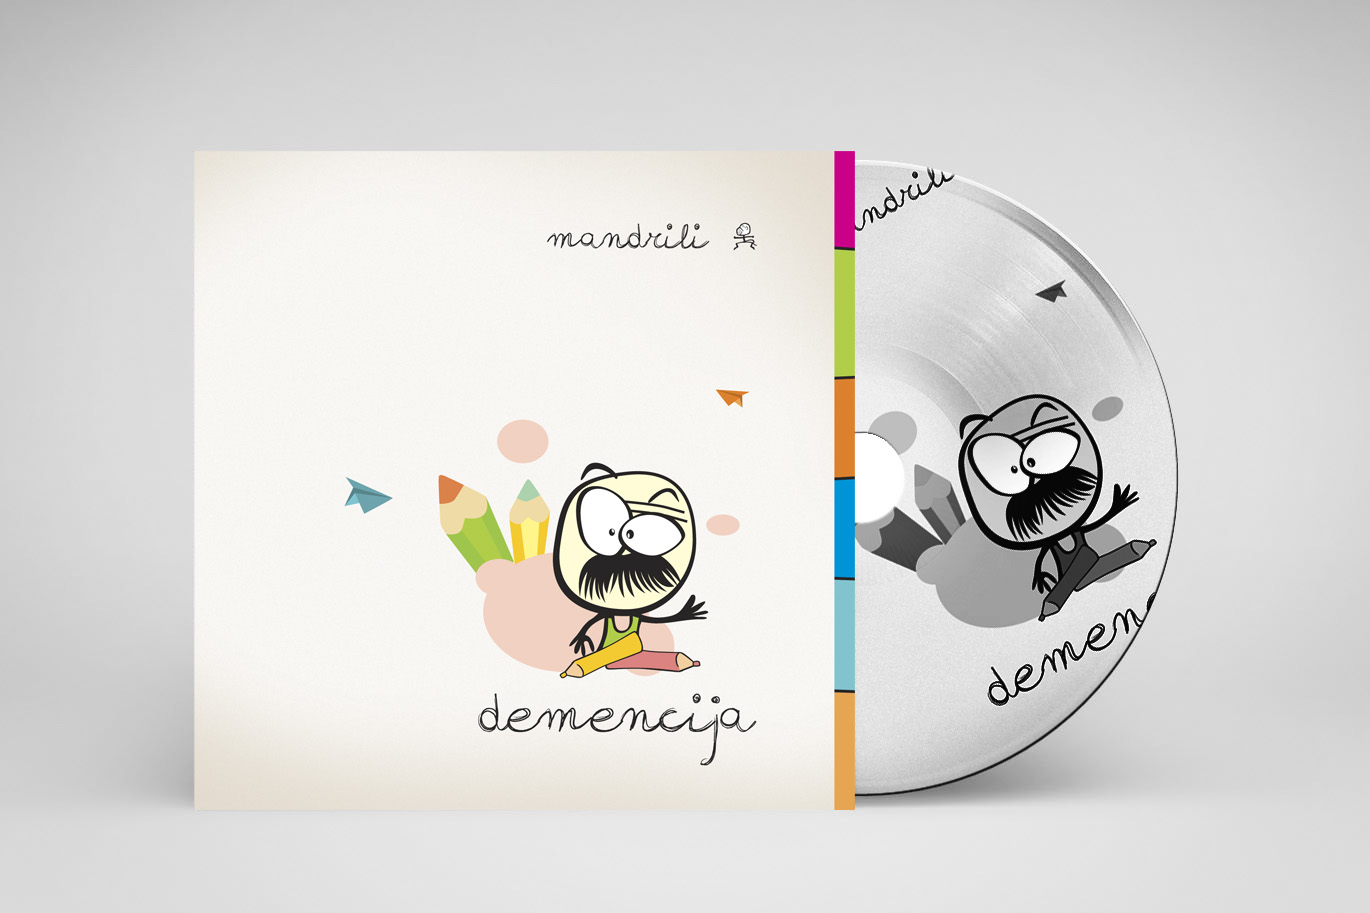 cd covers ozfdesign